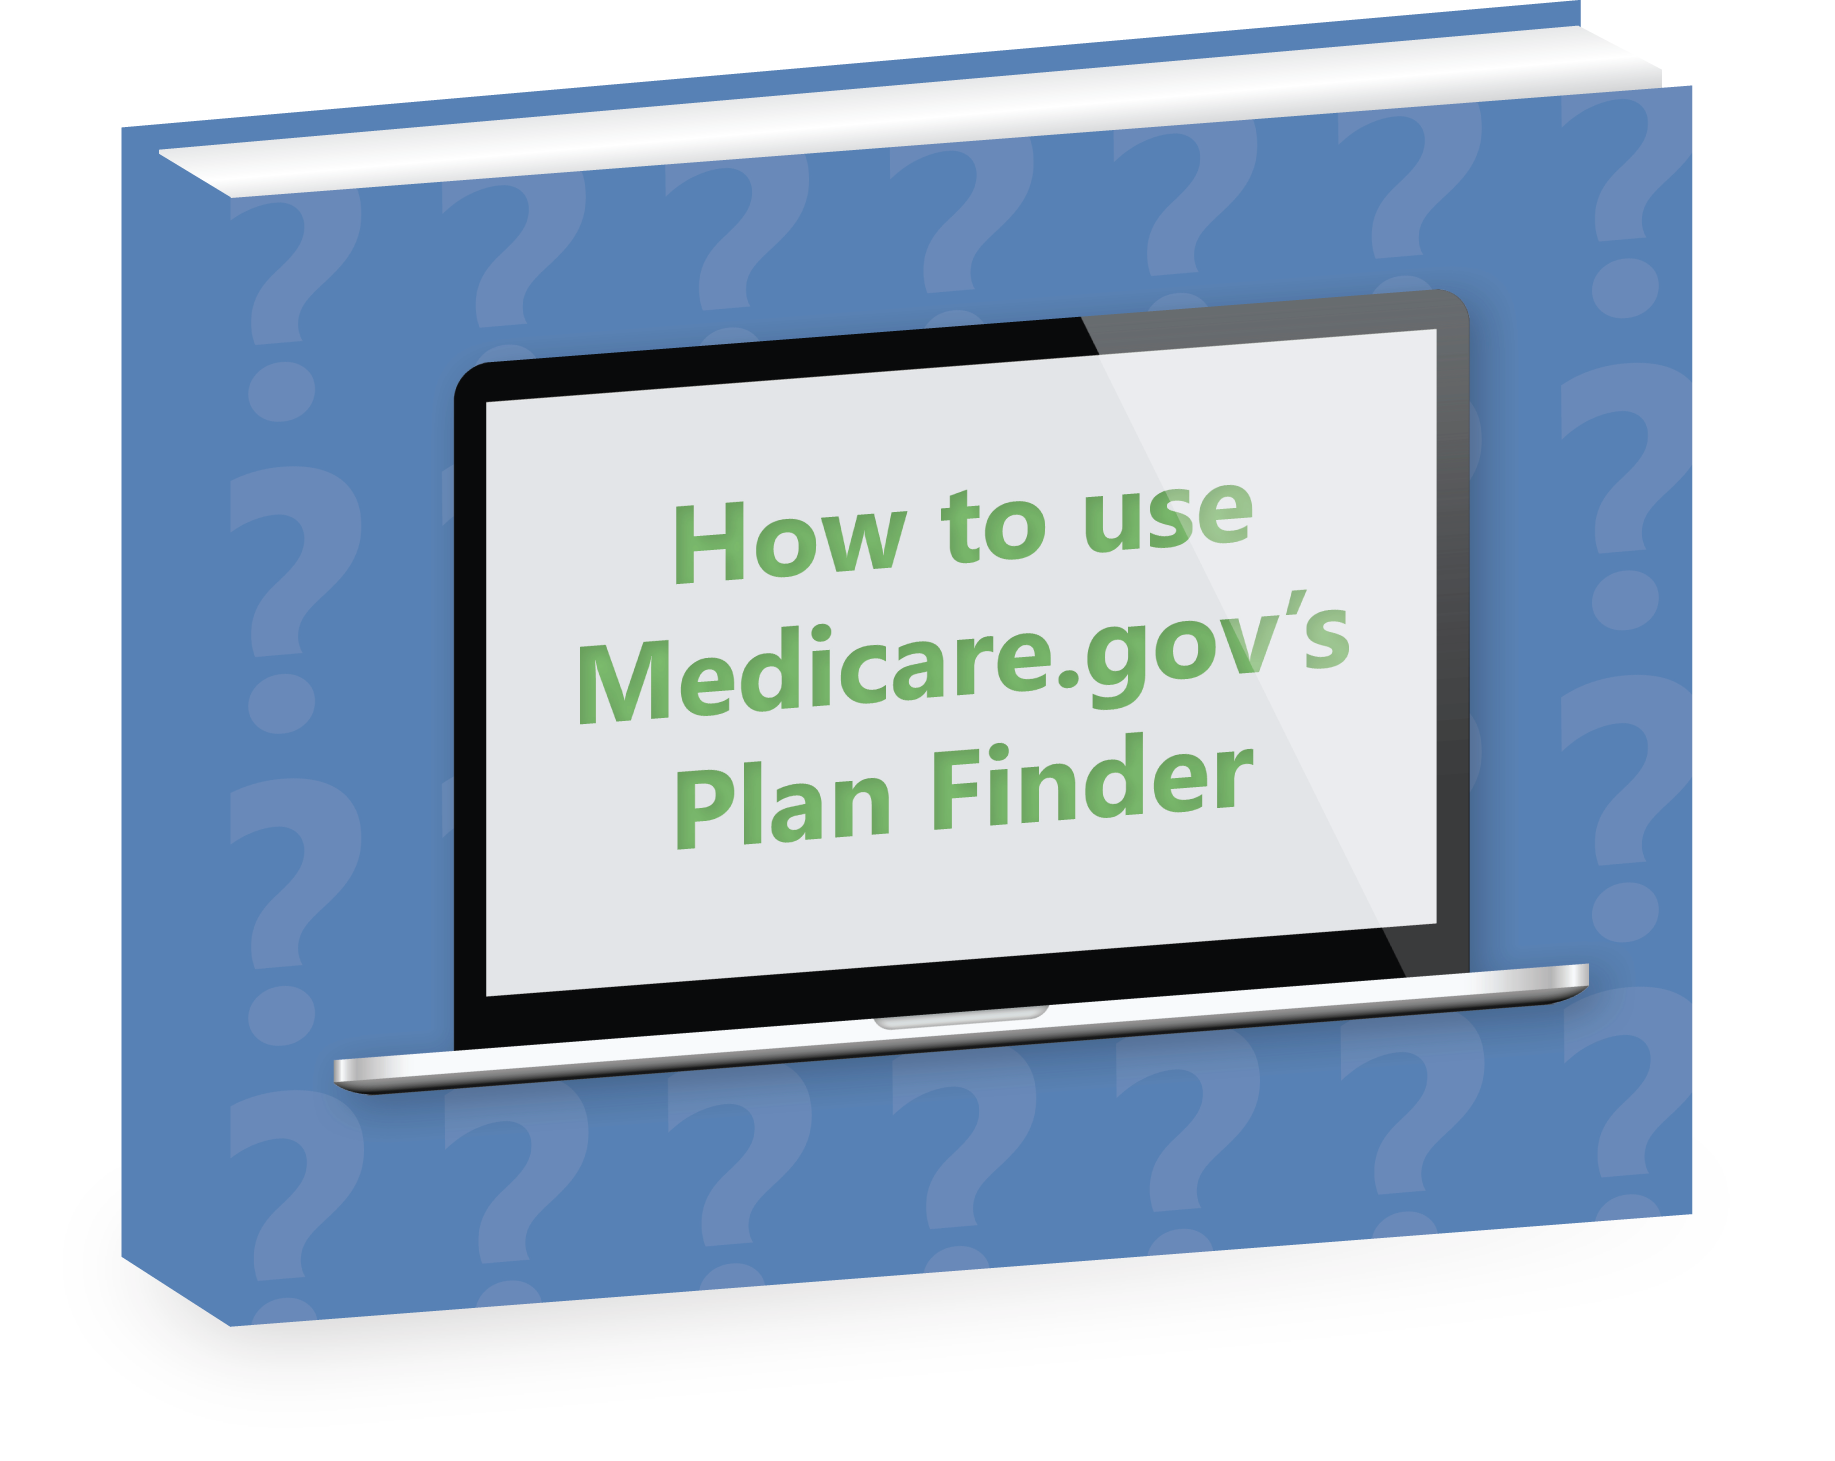 How to Use Medicare.gov's Plan Finder